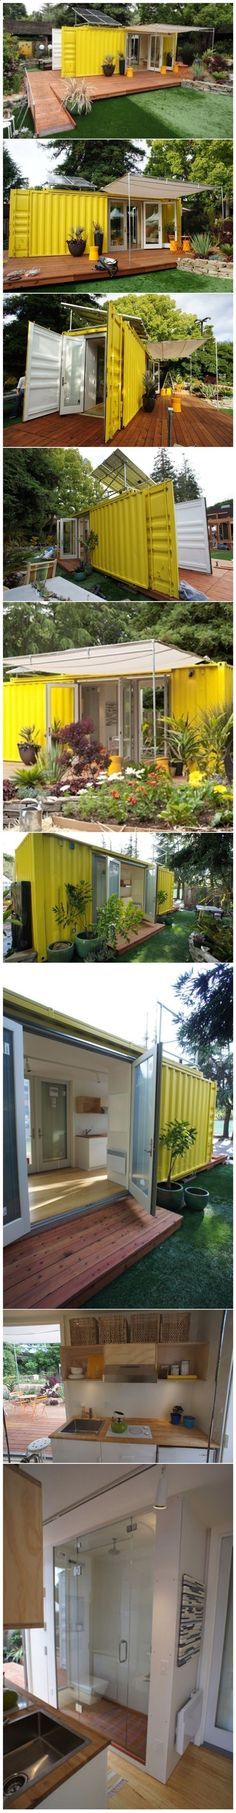 "Container House - via www.cargotecture.com This little shipping container house called ""The Nomad"" was designed for Sunset Magazine by Seattle-Based HyBrid Architecture. The home's shell is a used 24 foot shipping container that provides 192 sq. ft. of interior living space and can sleep four people. The house has a galley kitchen, a bathroom and several exterior openings. ~ Great pin! For Oahu architectural design visit ownerbuiltdesign.com - Who Else Wants Simple Step-By-Step Plans T..."